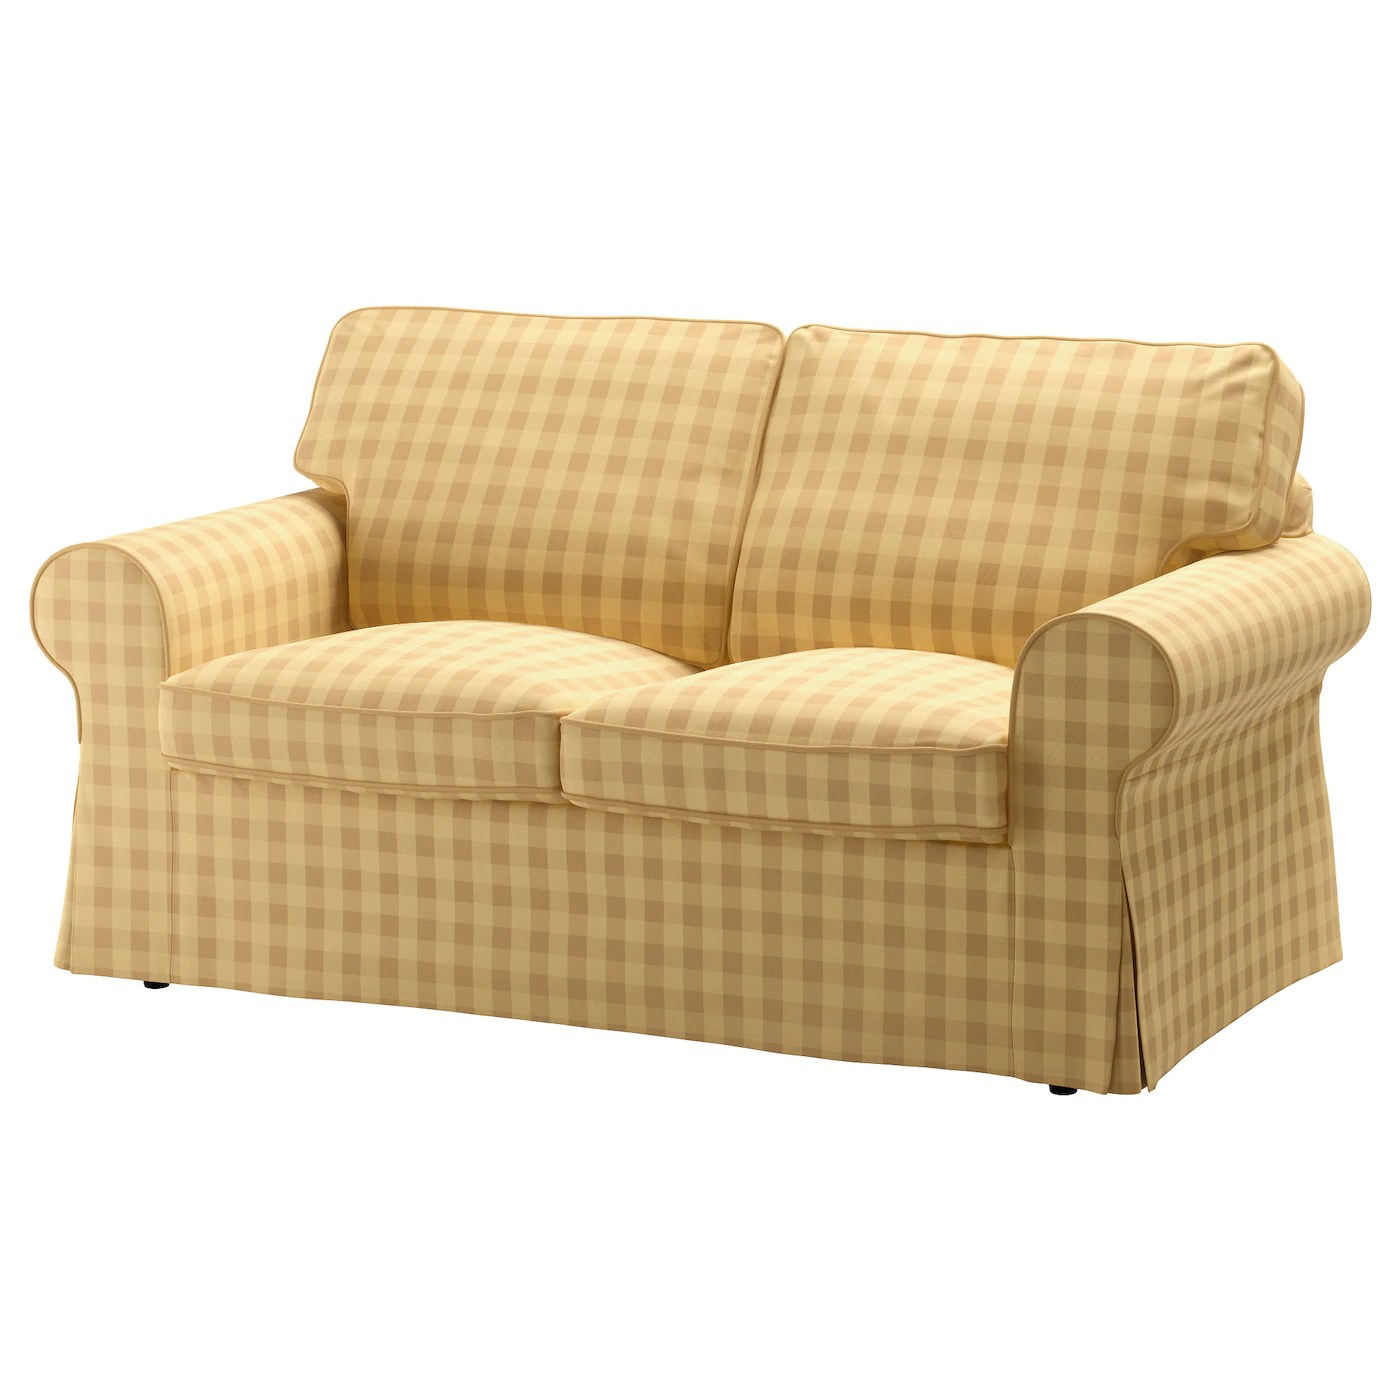 yellow sofa bed ikea big cushion leather vimle 3 seat with chaise longue